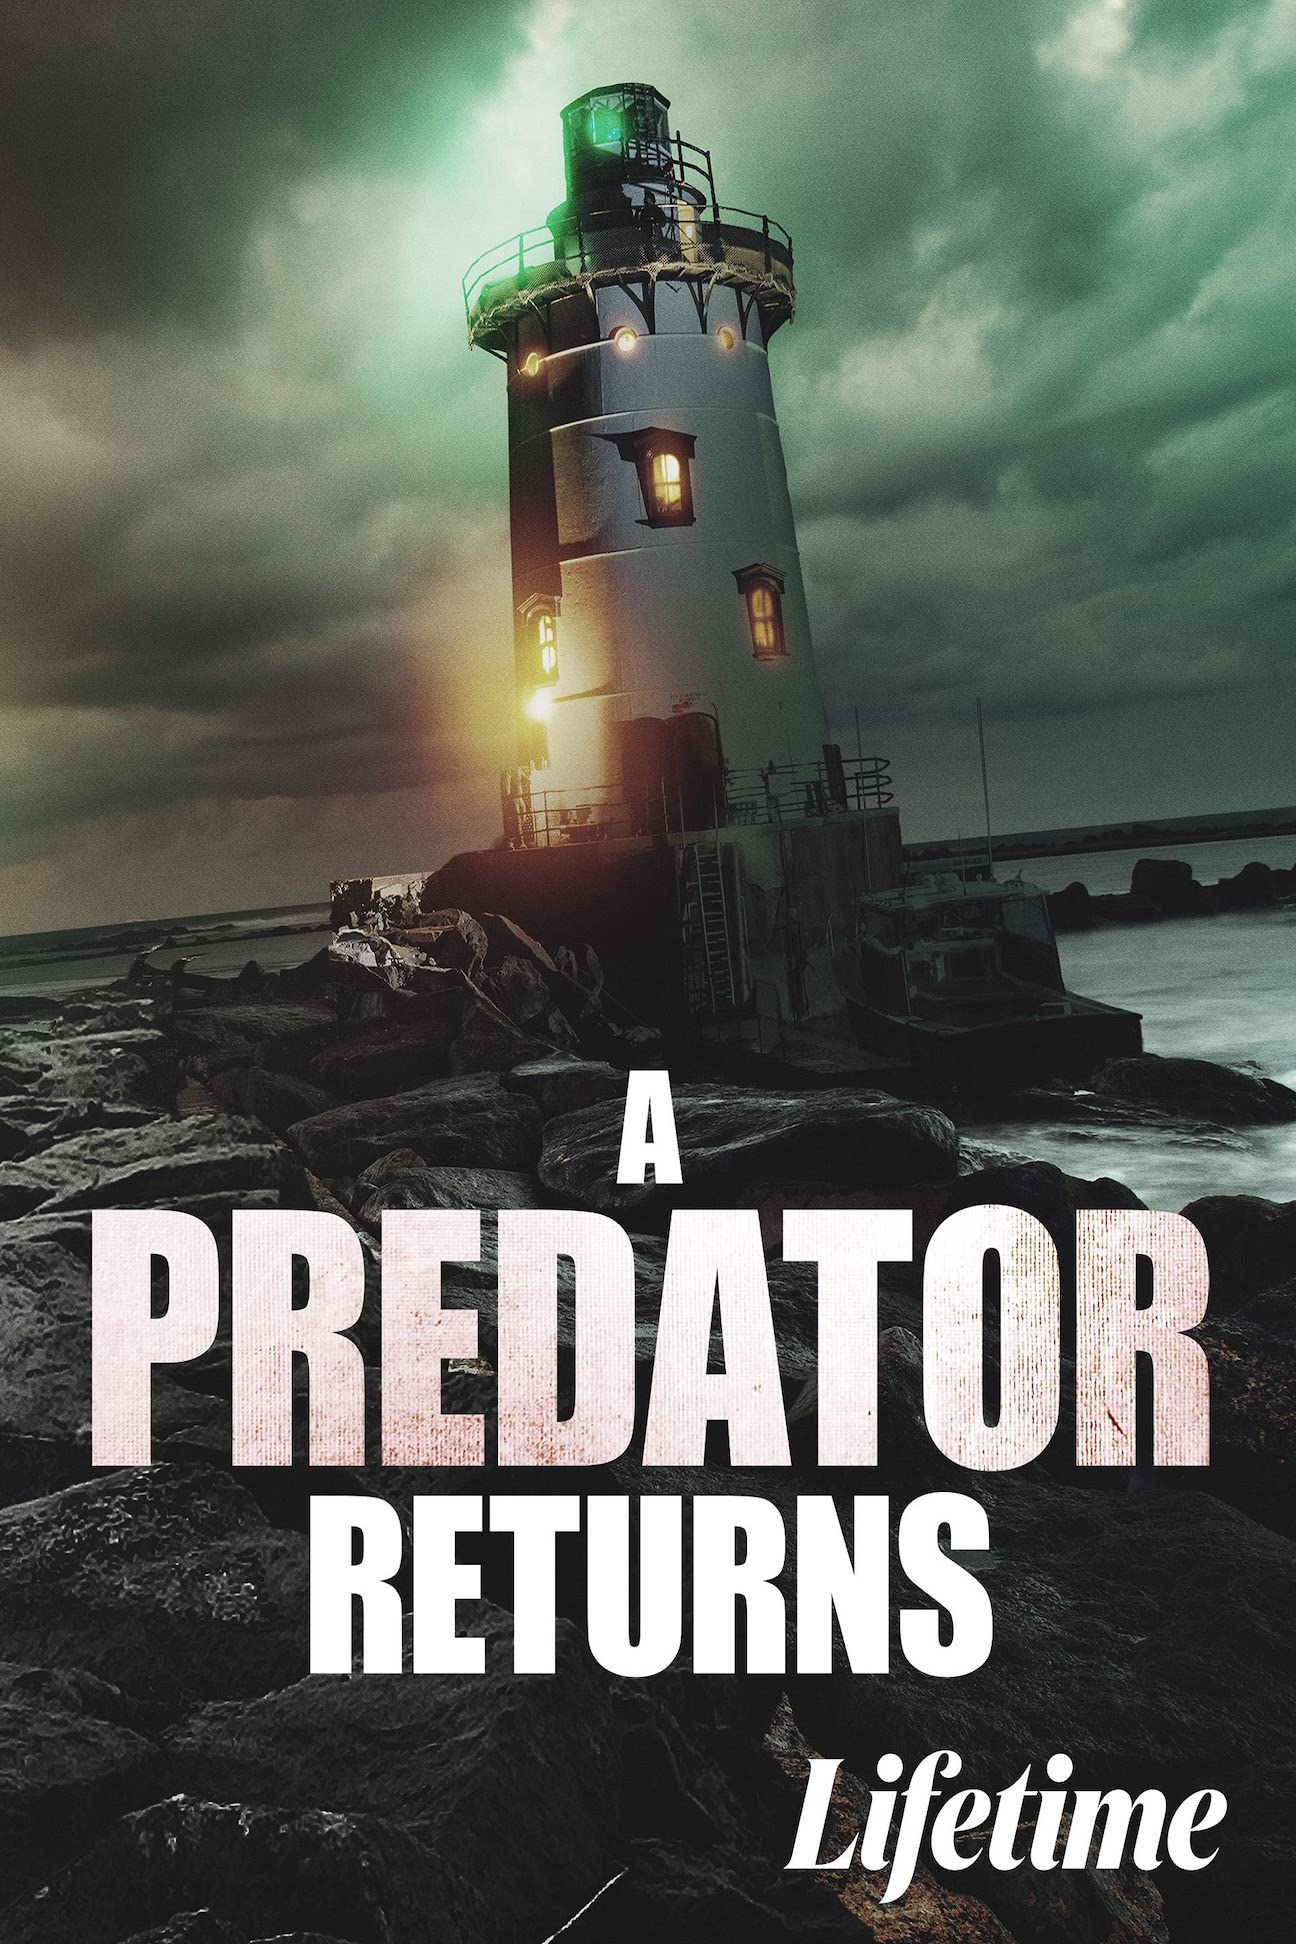 """Poster for Lifetime original movie, A Predator Returns, also known as Stalker's Prey 3, released May 22nd, 2021. The image features a short, grey lighthouse perched on a rocky shore at sea level. In the background, the sky is cloudy and green as a storm approaches at dusk. The image is overlaid with the words """"A PREDATOR RETURNS"""" and """"Lifetime."""" Flavorlab Sound provided full service audio post production for the series."""